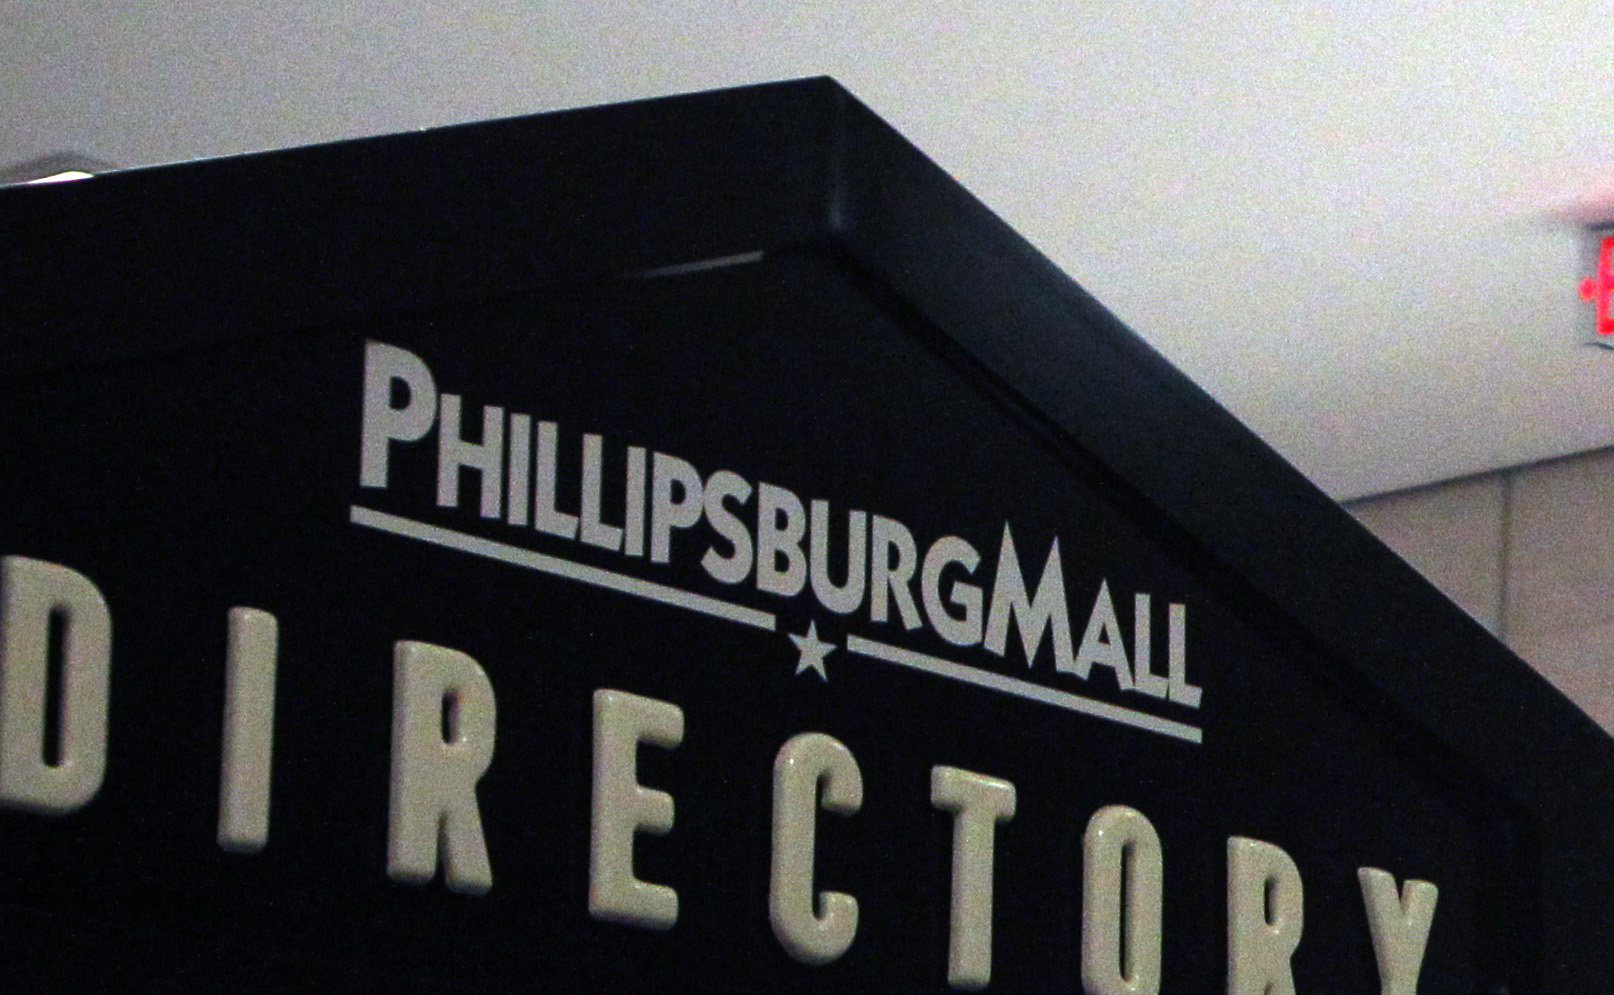 is the end near for phillipsburg mall owner considering